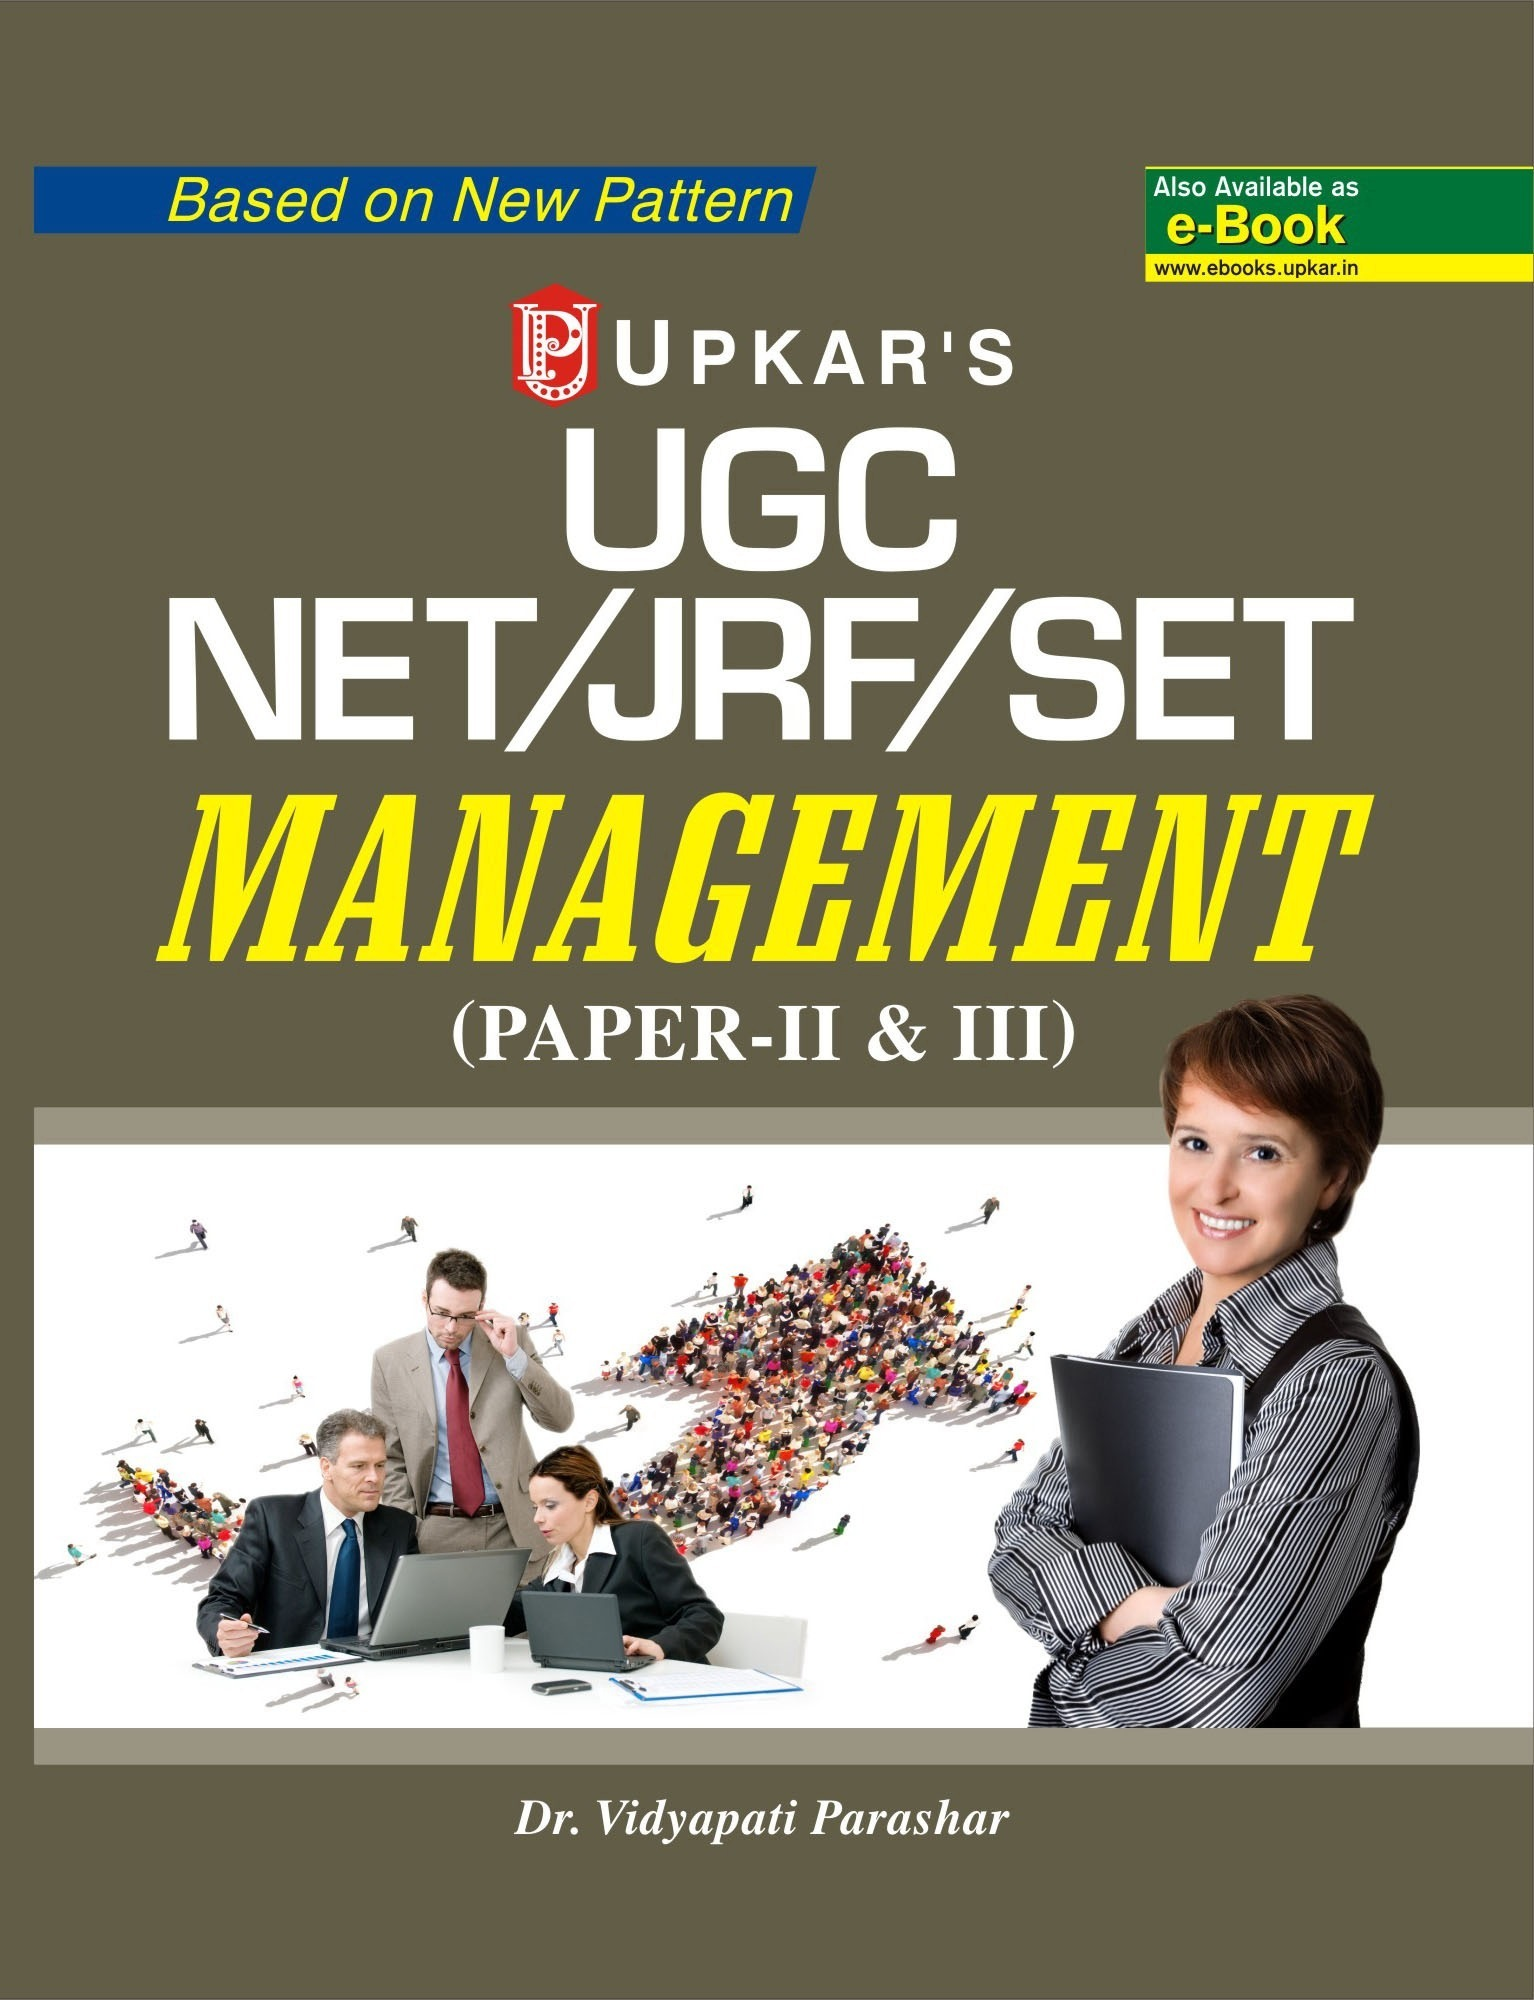 Management Paper II and III for UGC-NET JRF SET